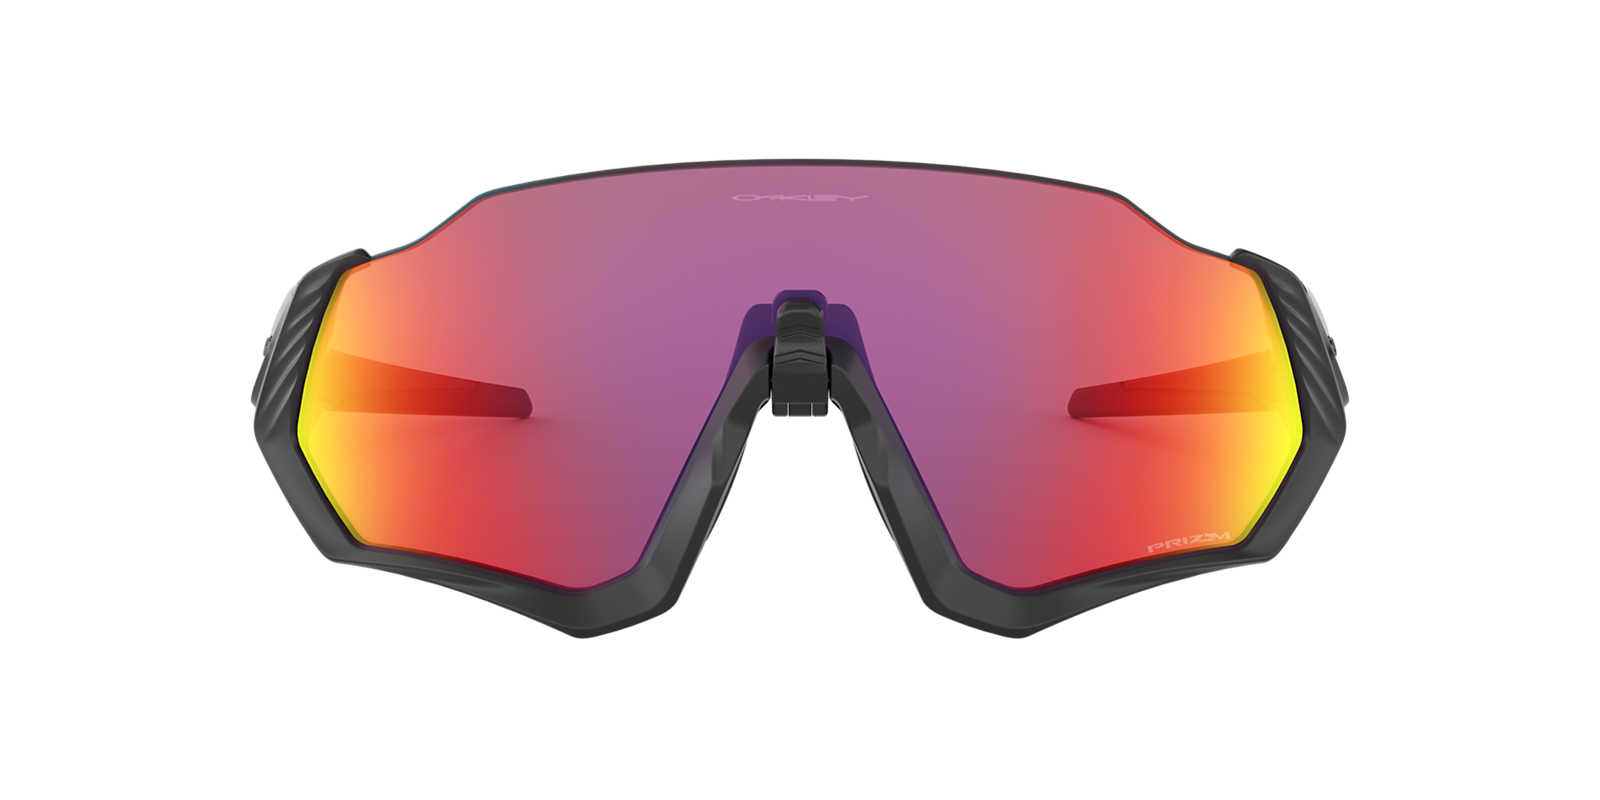 Probamos las Oakley Flight Jacket